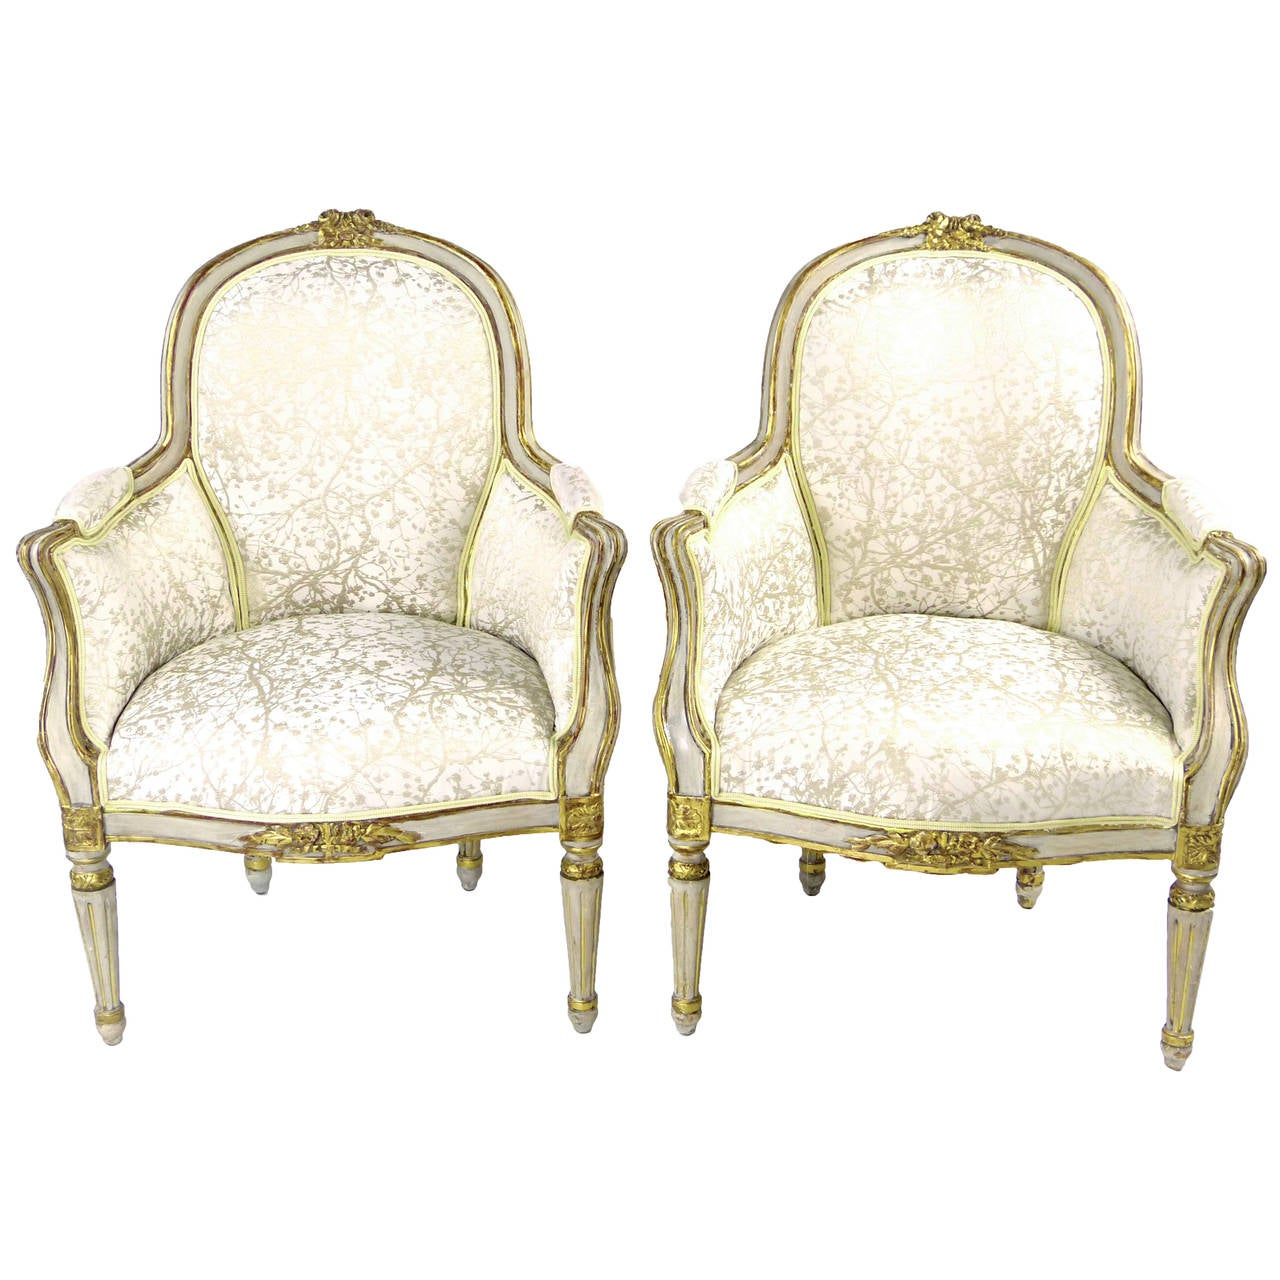 19th Century Louis XVI Style Bergere Type Armchairs at 1stdibs